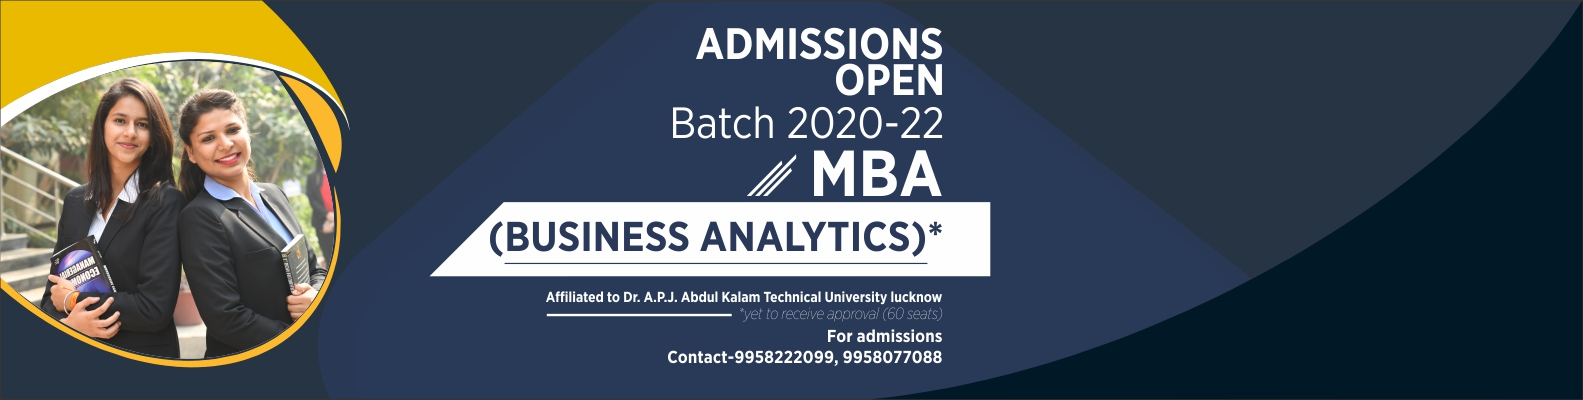 Admission-open-Business-Analytics